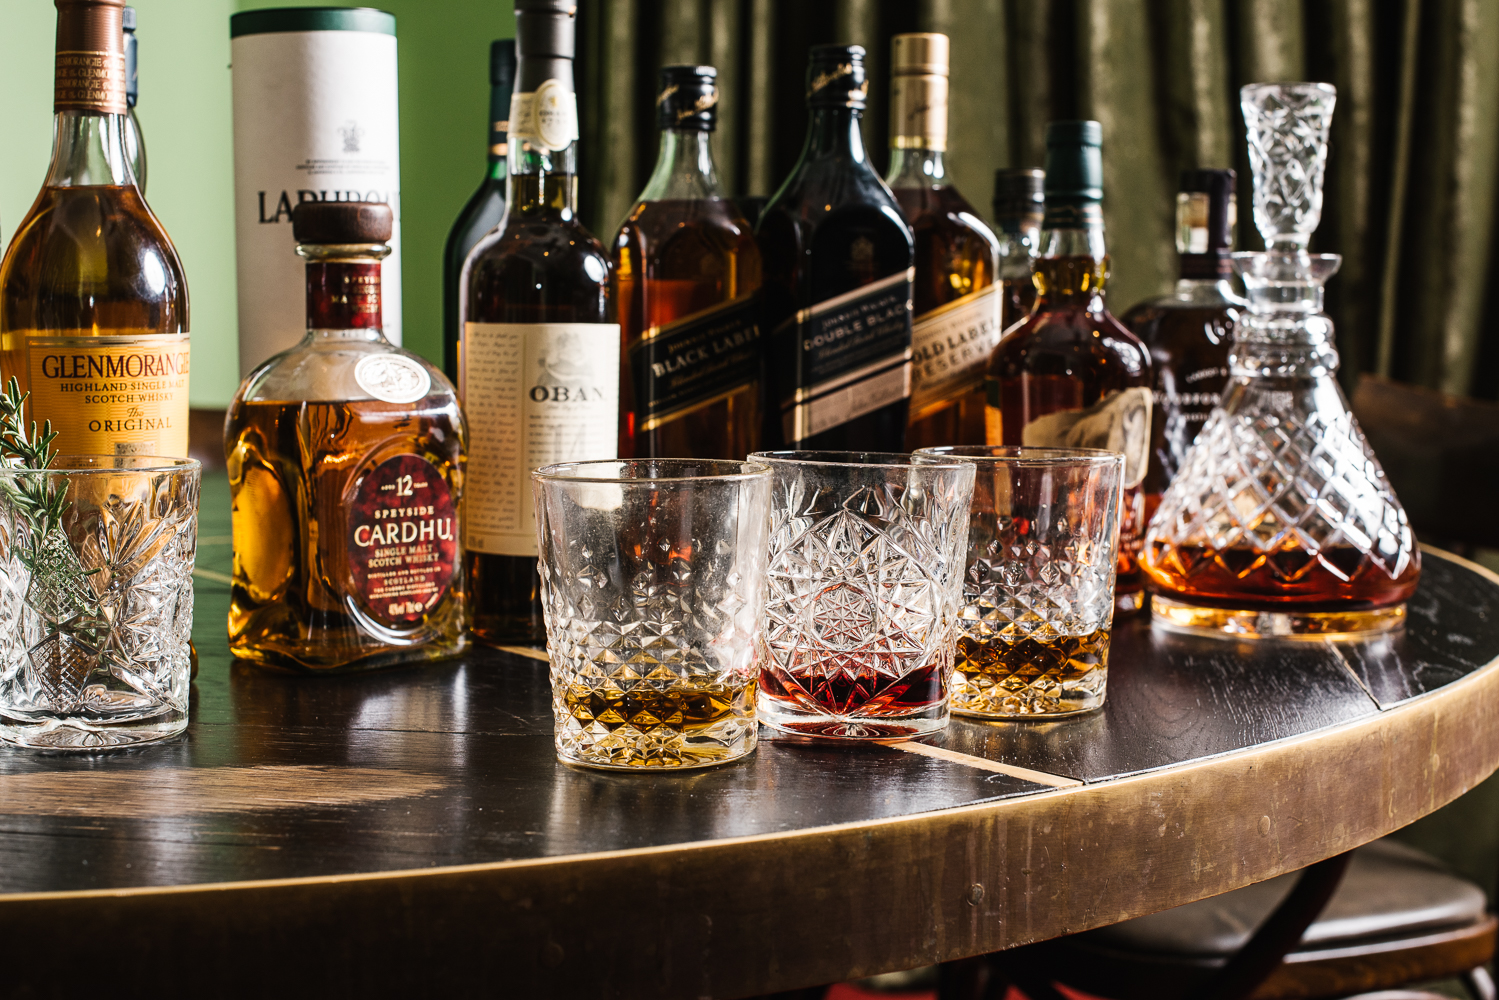 Whiskey wonderland at The Glenmore this July